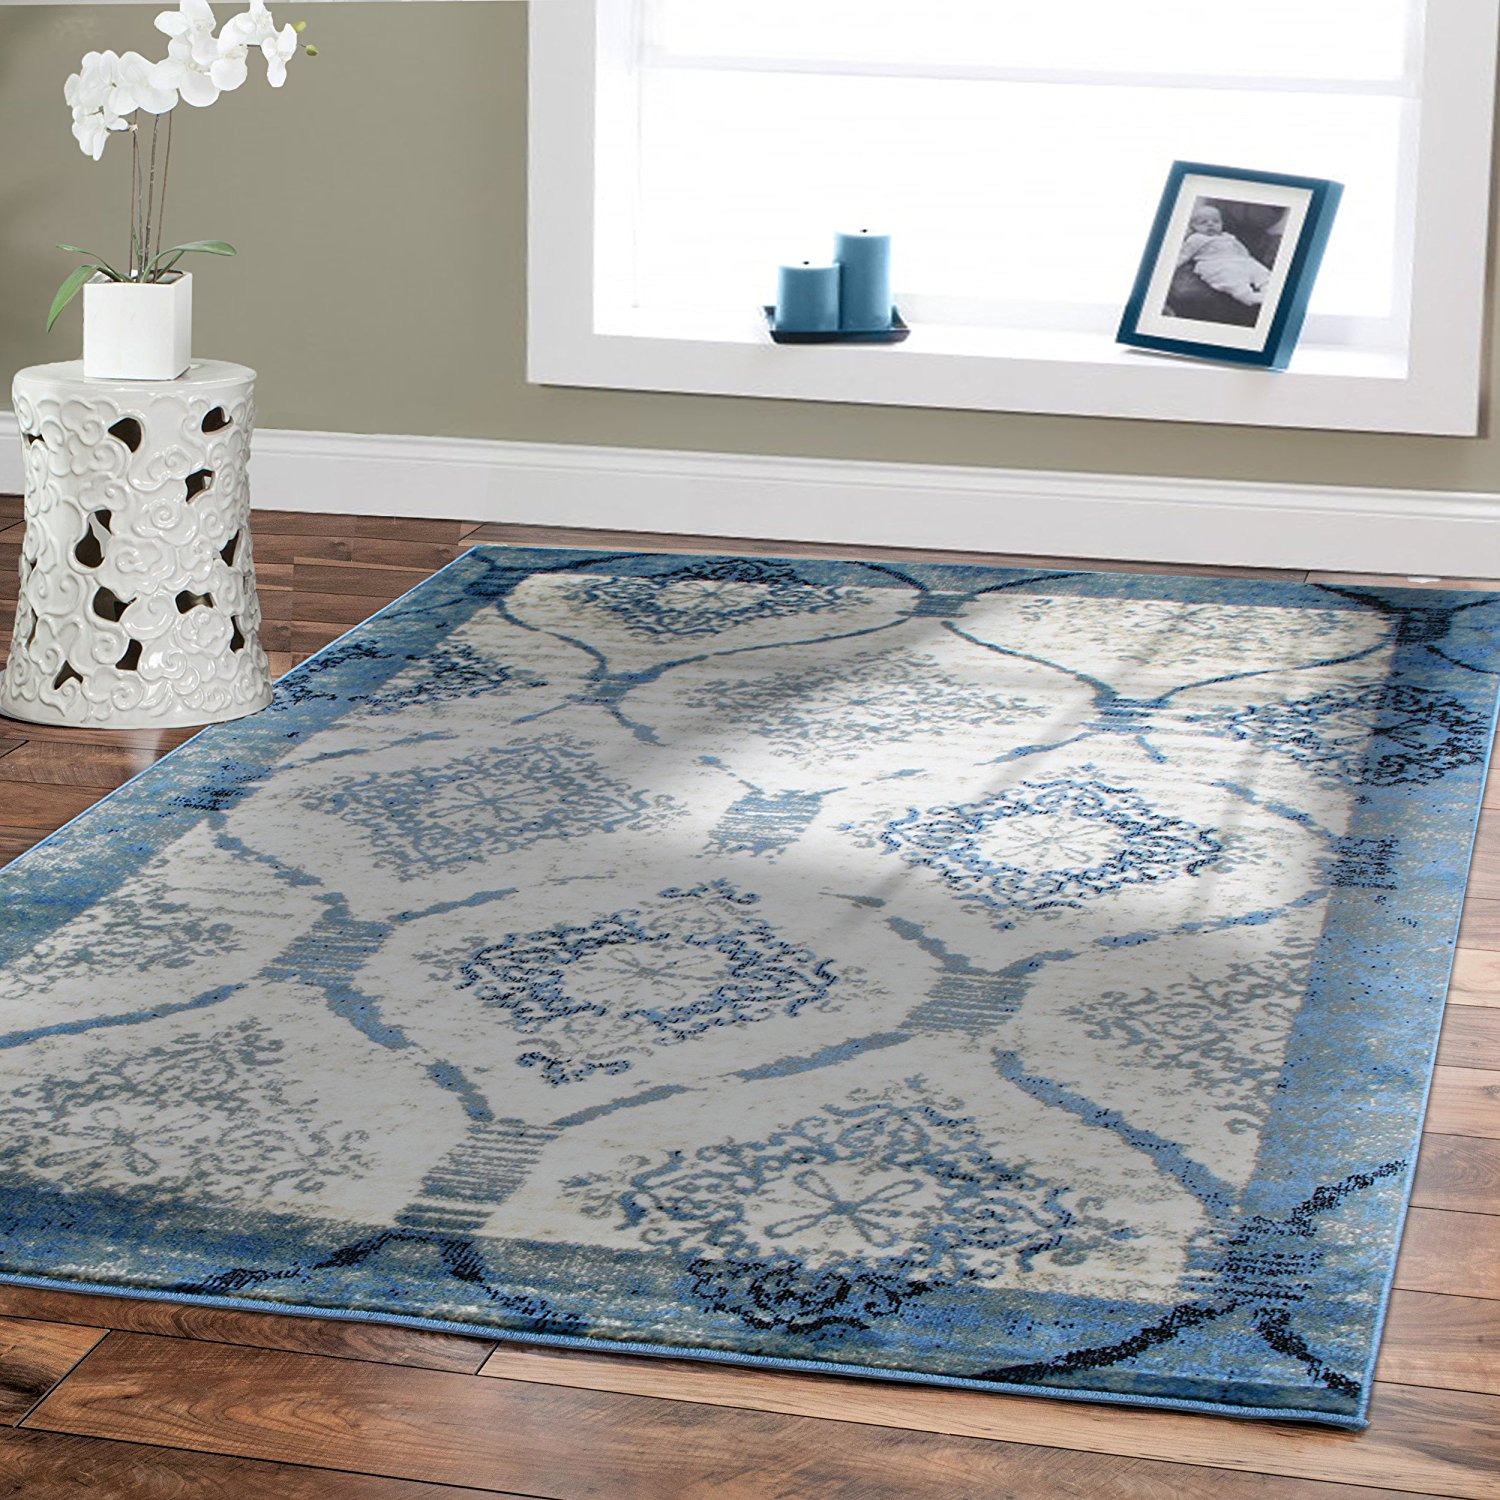 Area Rugs For Living Room 8x10 Under150 Blue Dining Room Rugs For Under The  Table 8x11